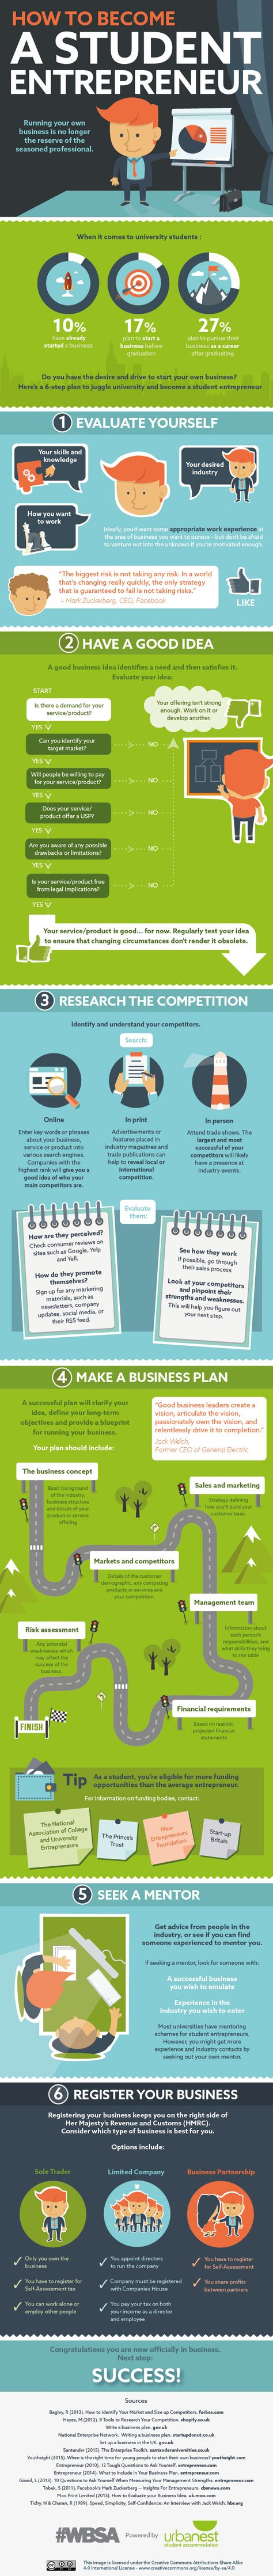 6 Steps to Becoming a Successful Student Entrepreneur (Infographic)